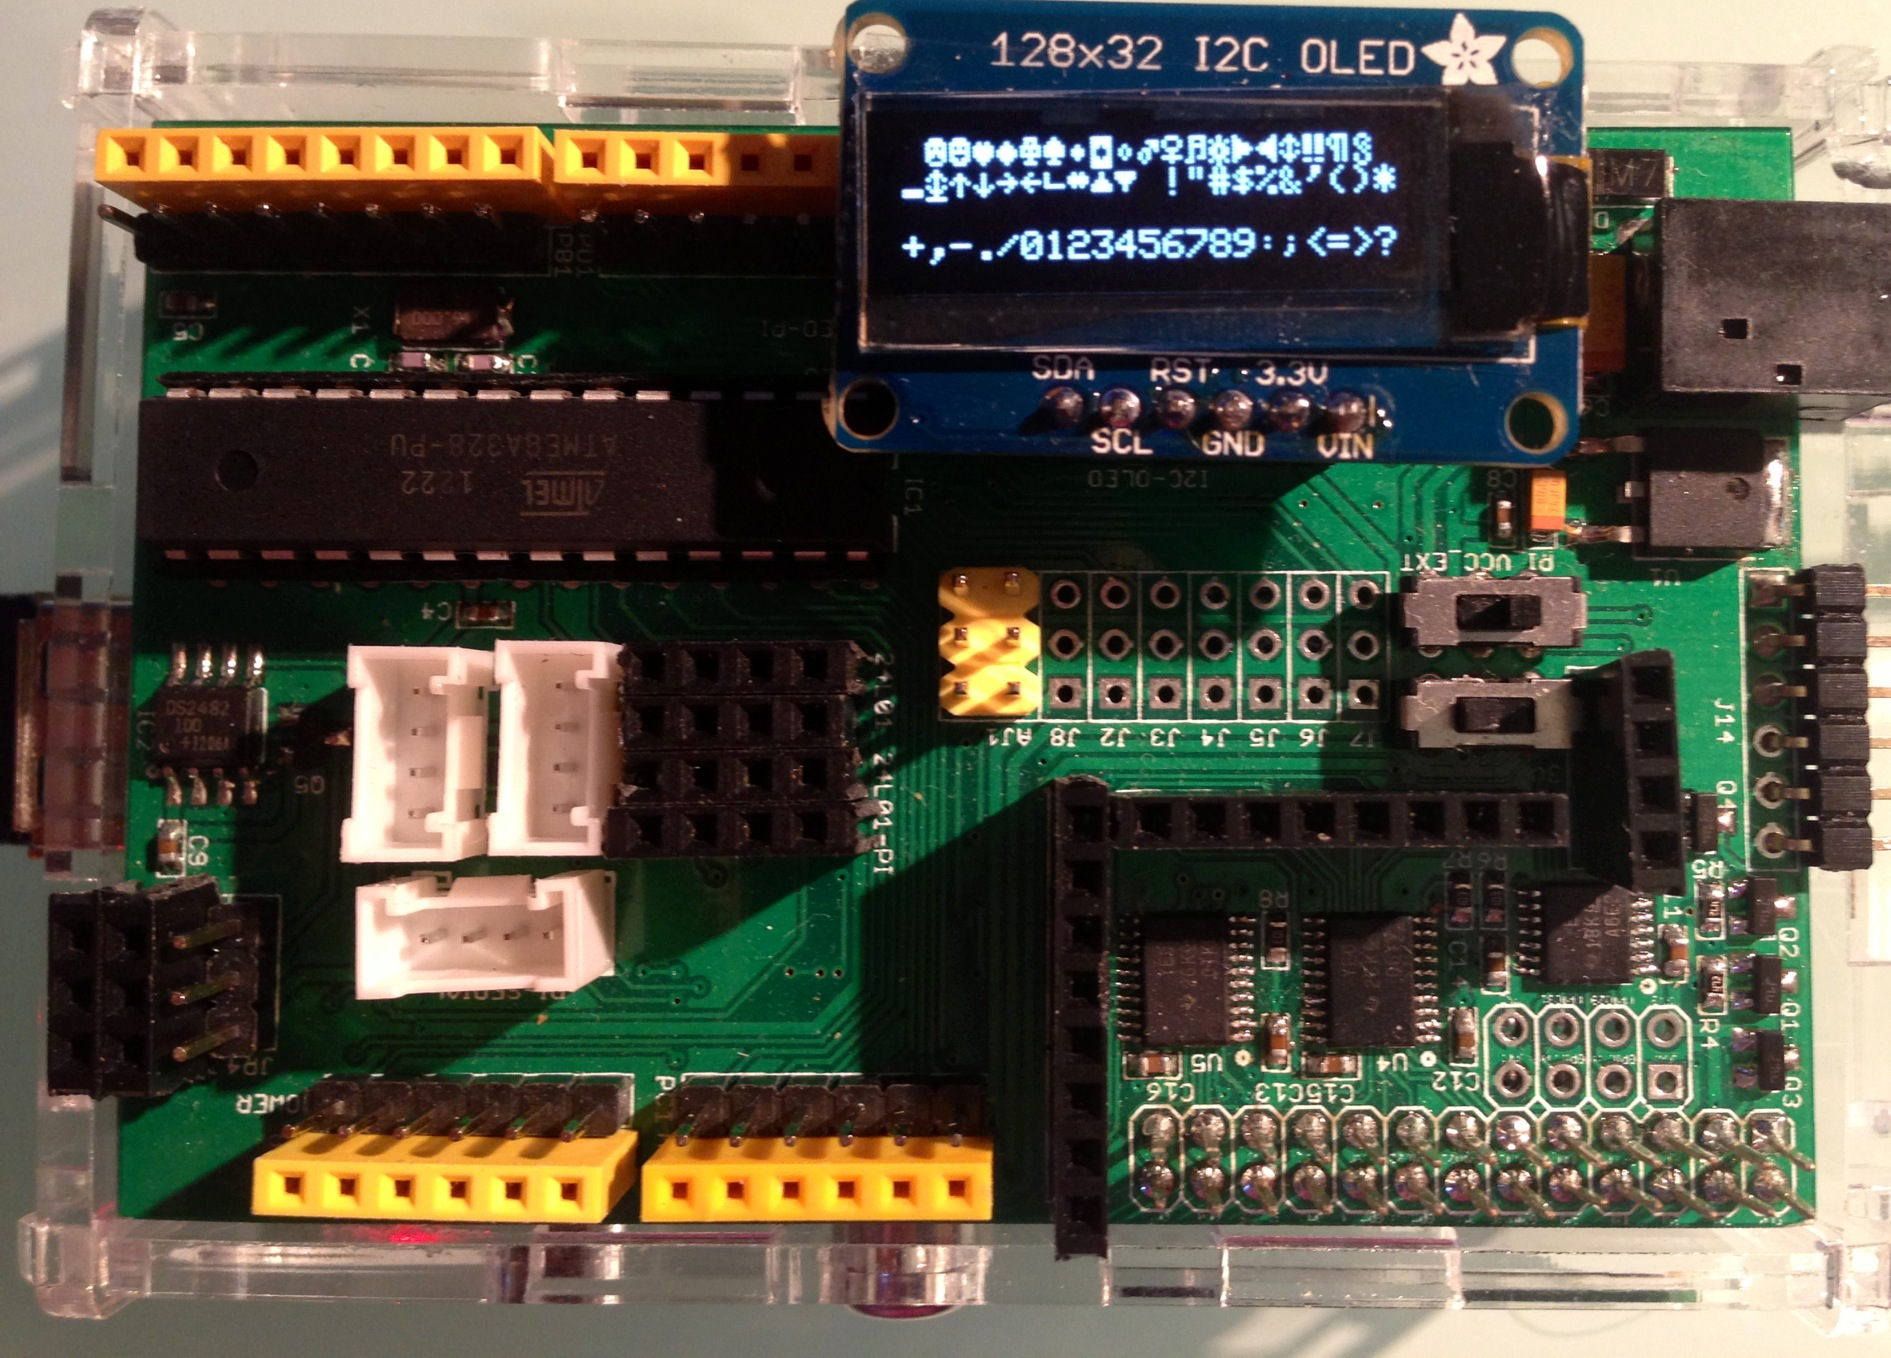 Adafruit Ssd1306 Oled Display Driver For Raspberry Pi Charless Blog Wiringpi Orange I2c On Arduipi